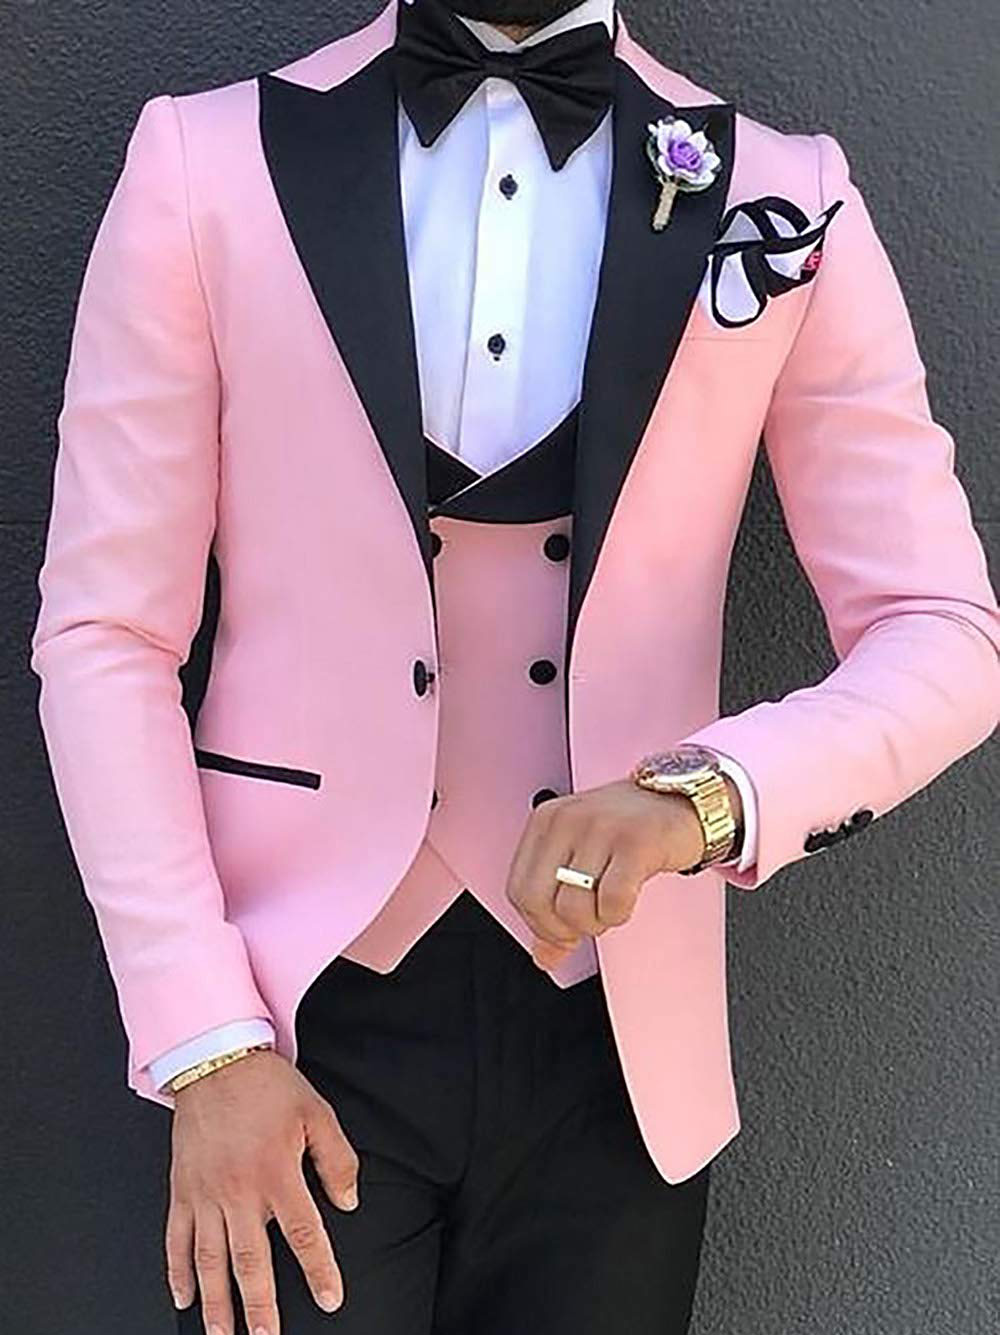 New Pink Men's 3-Pieces Suit Casual Solid Slim Fit Peak Lapel Tuxedos Double-breasted Vest For Wedding (Blazer+vest+Pants)